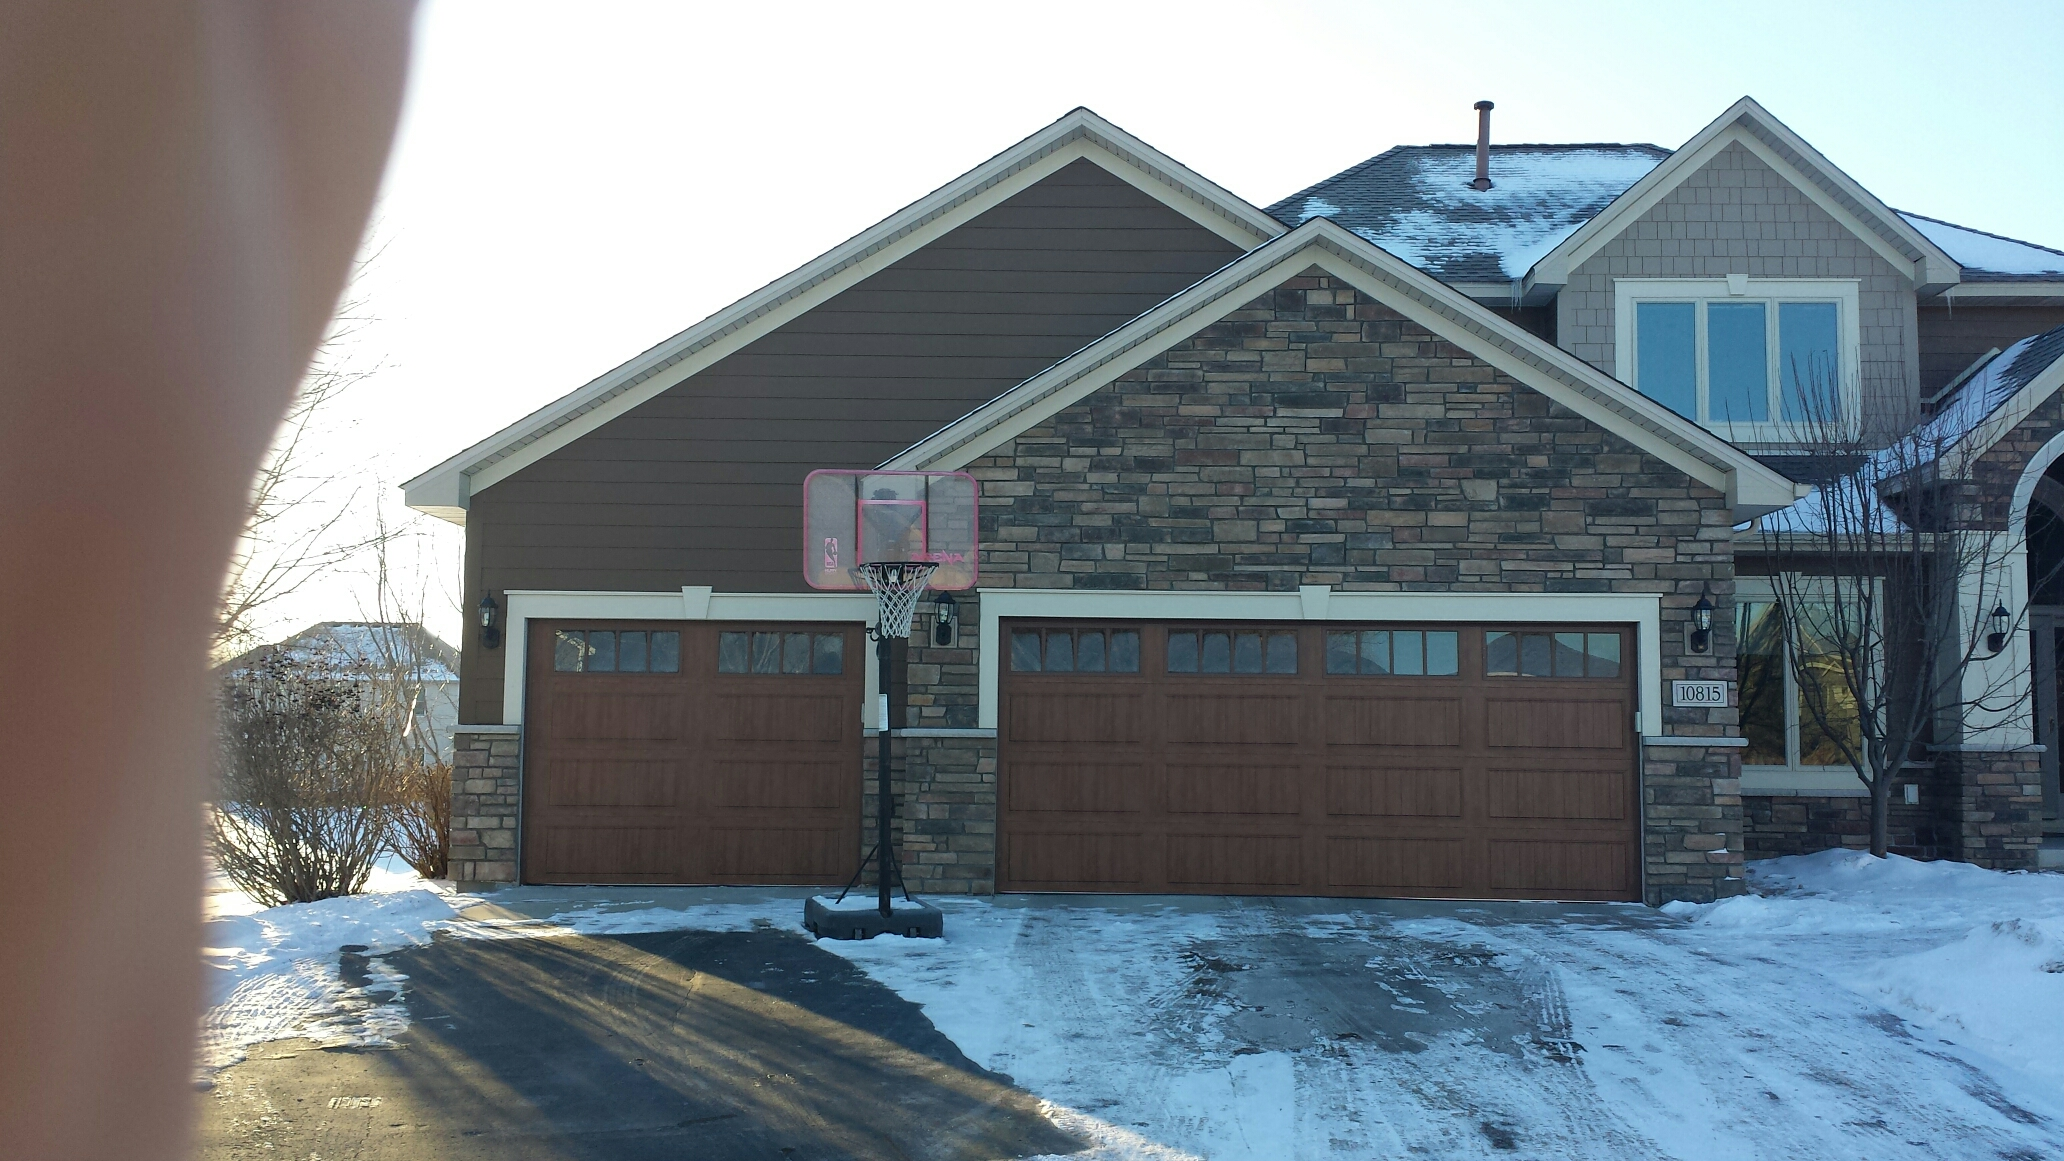 Minneapolis, MN -  Color plus james hardie siding. Boral stone. Clopay dark oak garage doors.